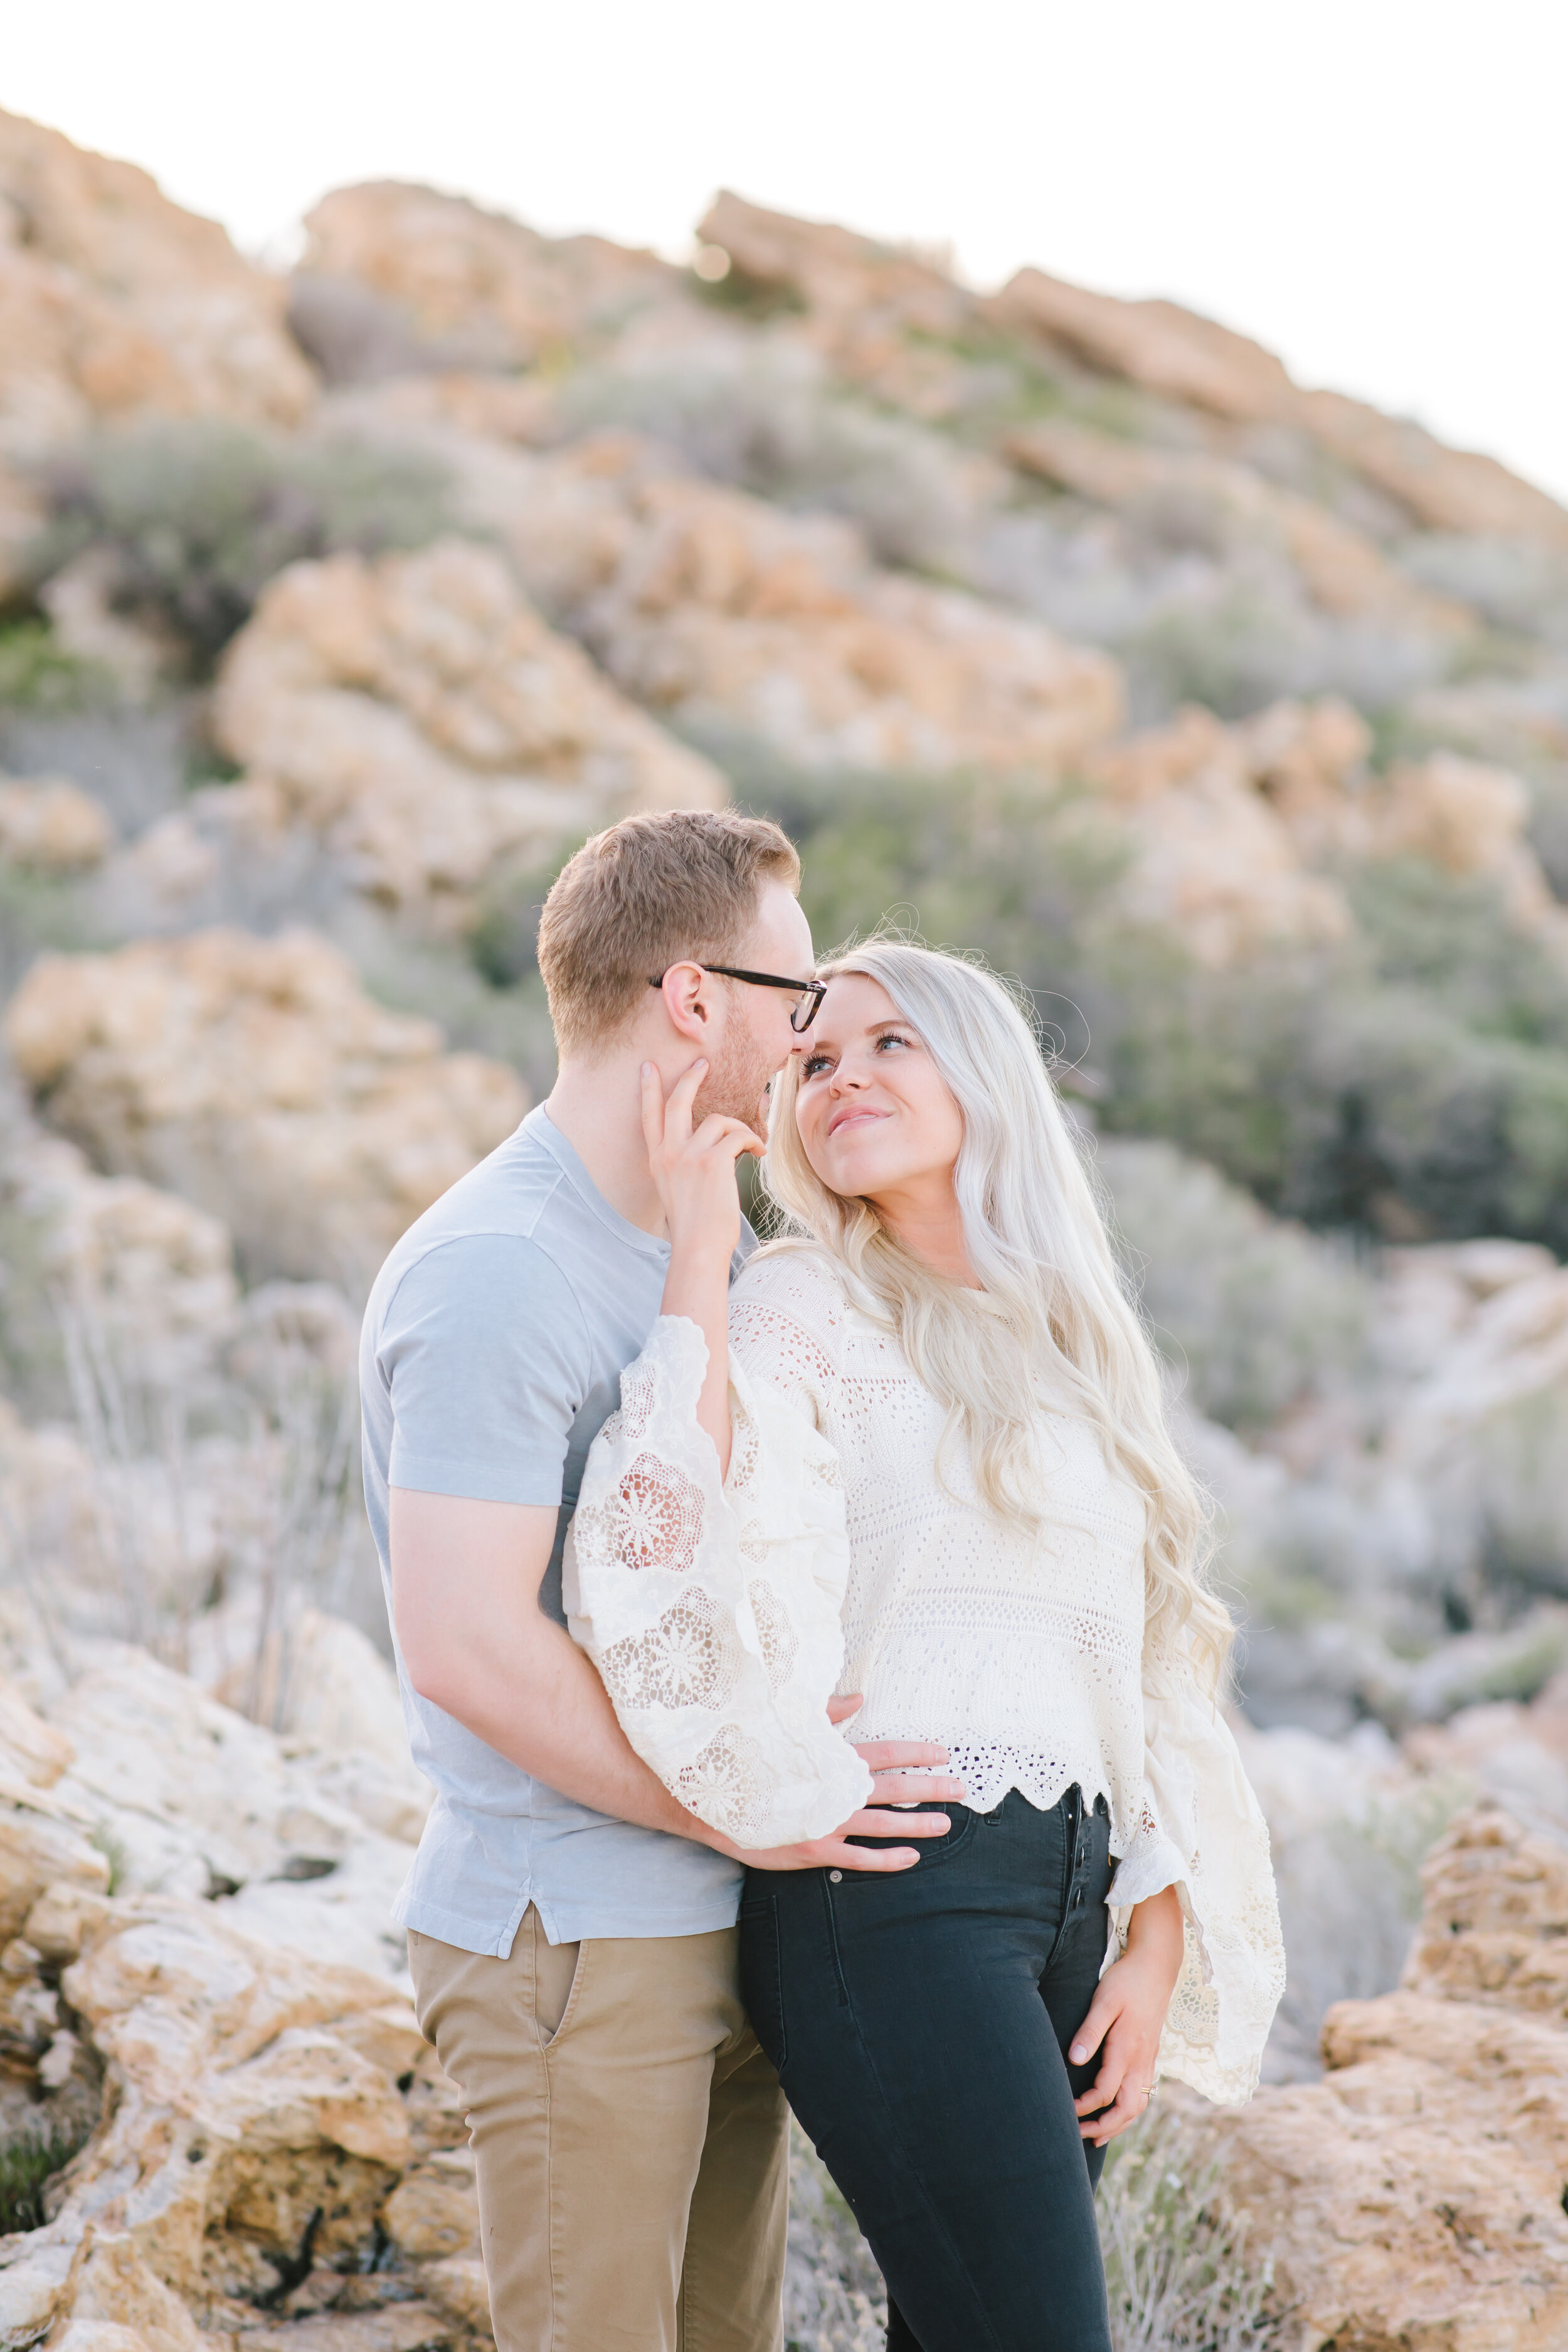 couple color scheme inspiration couple goals romantic getaway antelope island utah destination ideas soon to be bride and groom husband and wife to be cool tonnes engagement photo shoot casual outfit inspiration for engagements cute couple #couplegoals #engagements #antelopeisland #couplekissing #engagementoutfitinspo #locationinspo #romantic #outside #engagementposes #engagementideas #weddingring